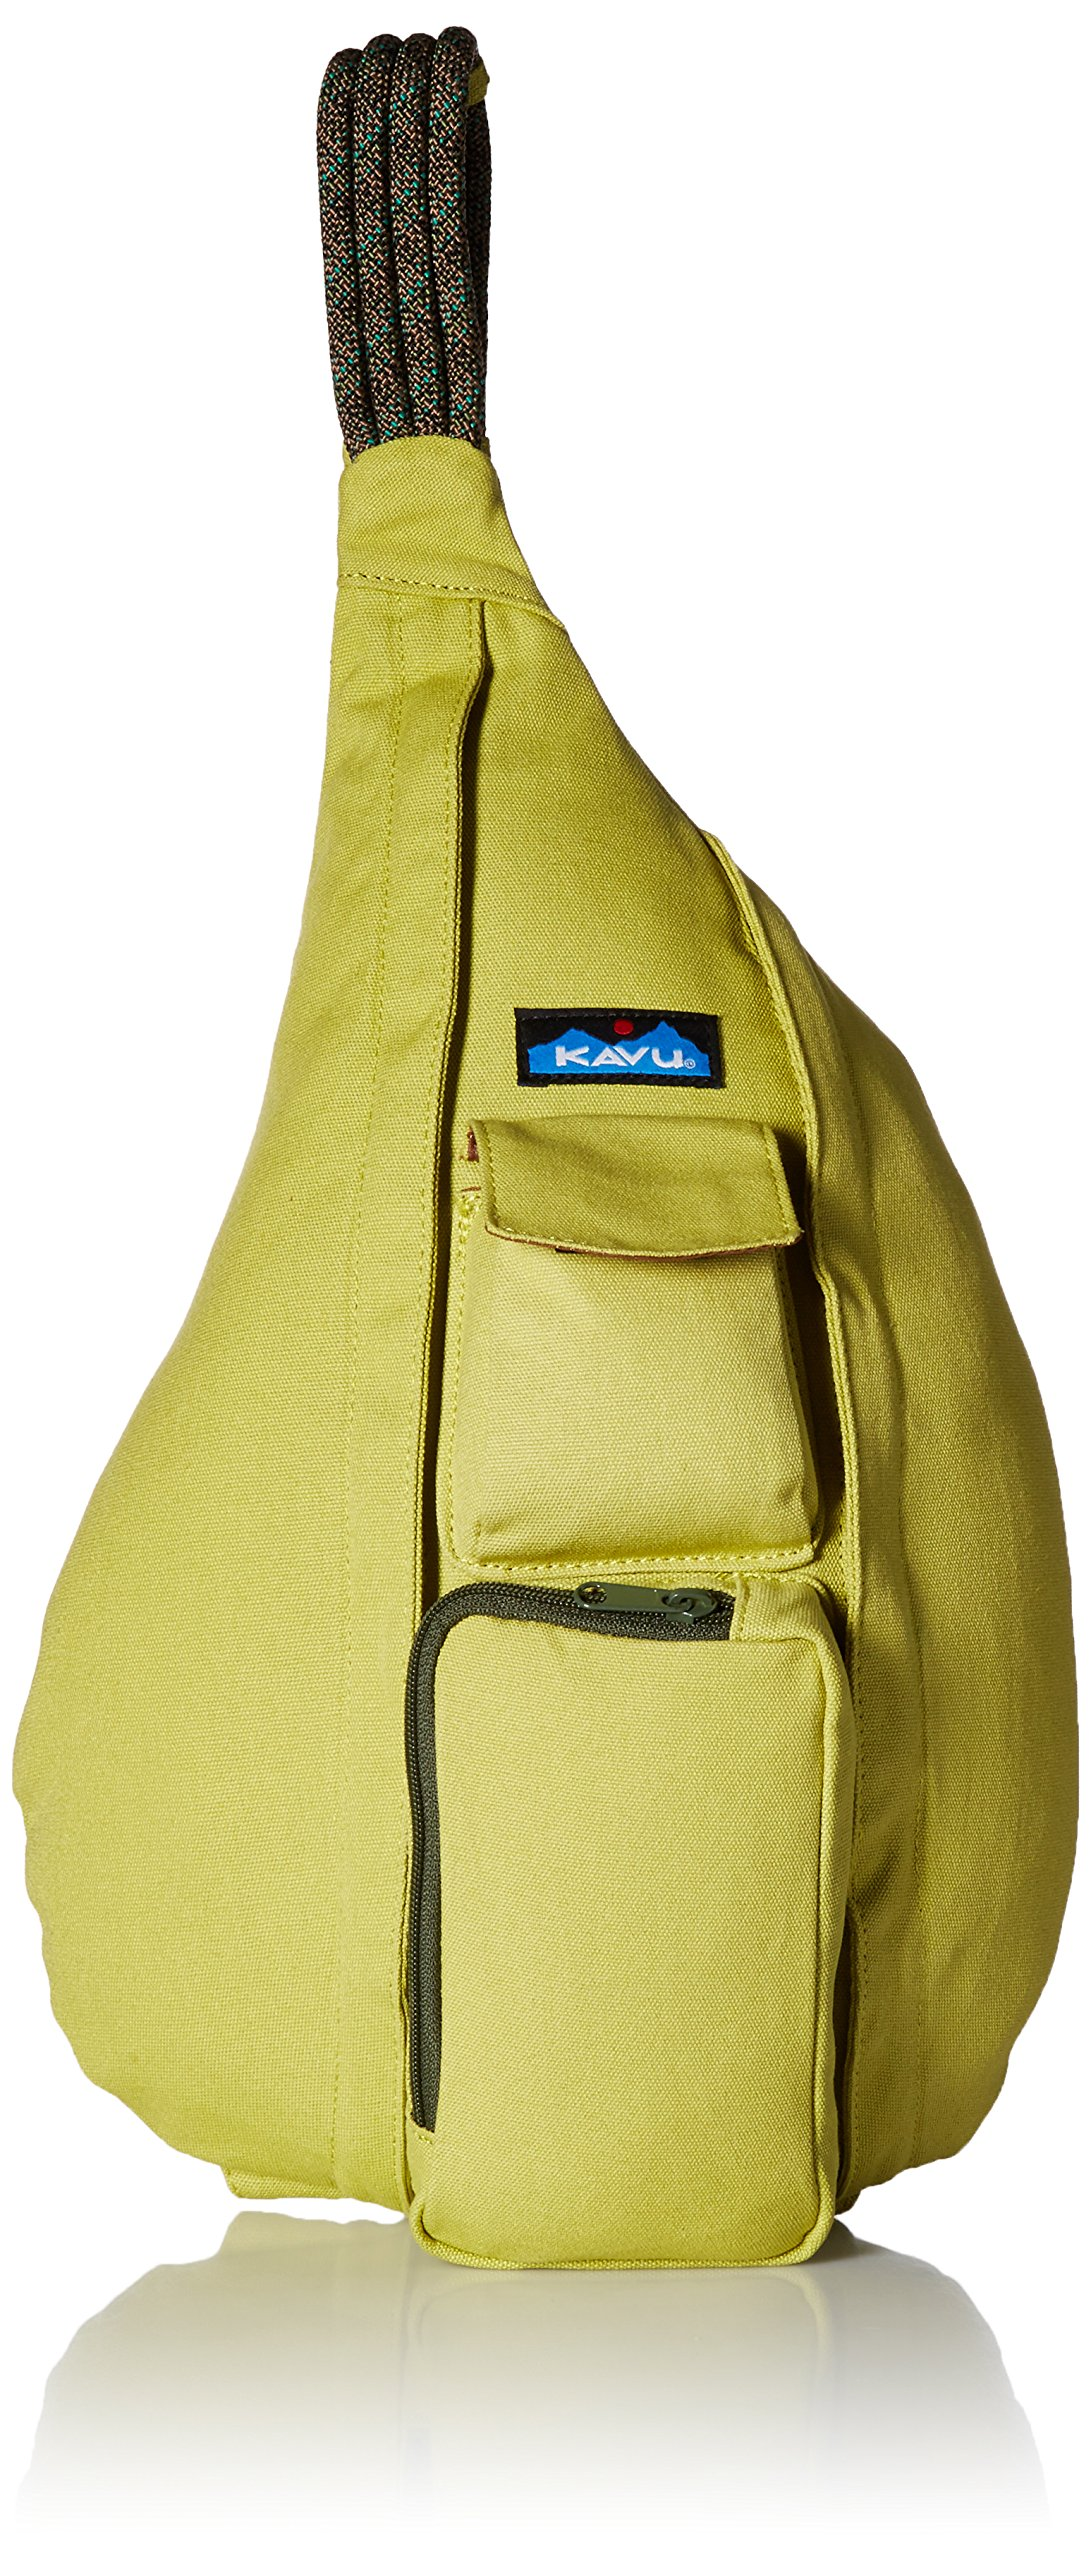 KAVU Rope Bag, Acid Green, One Size